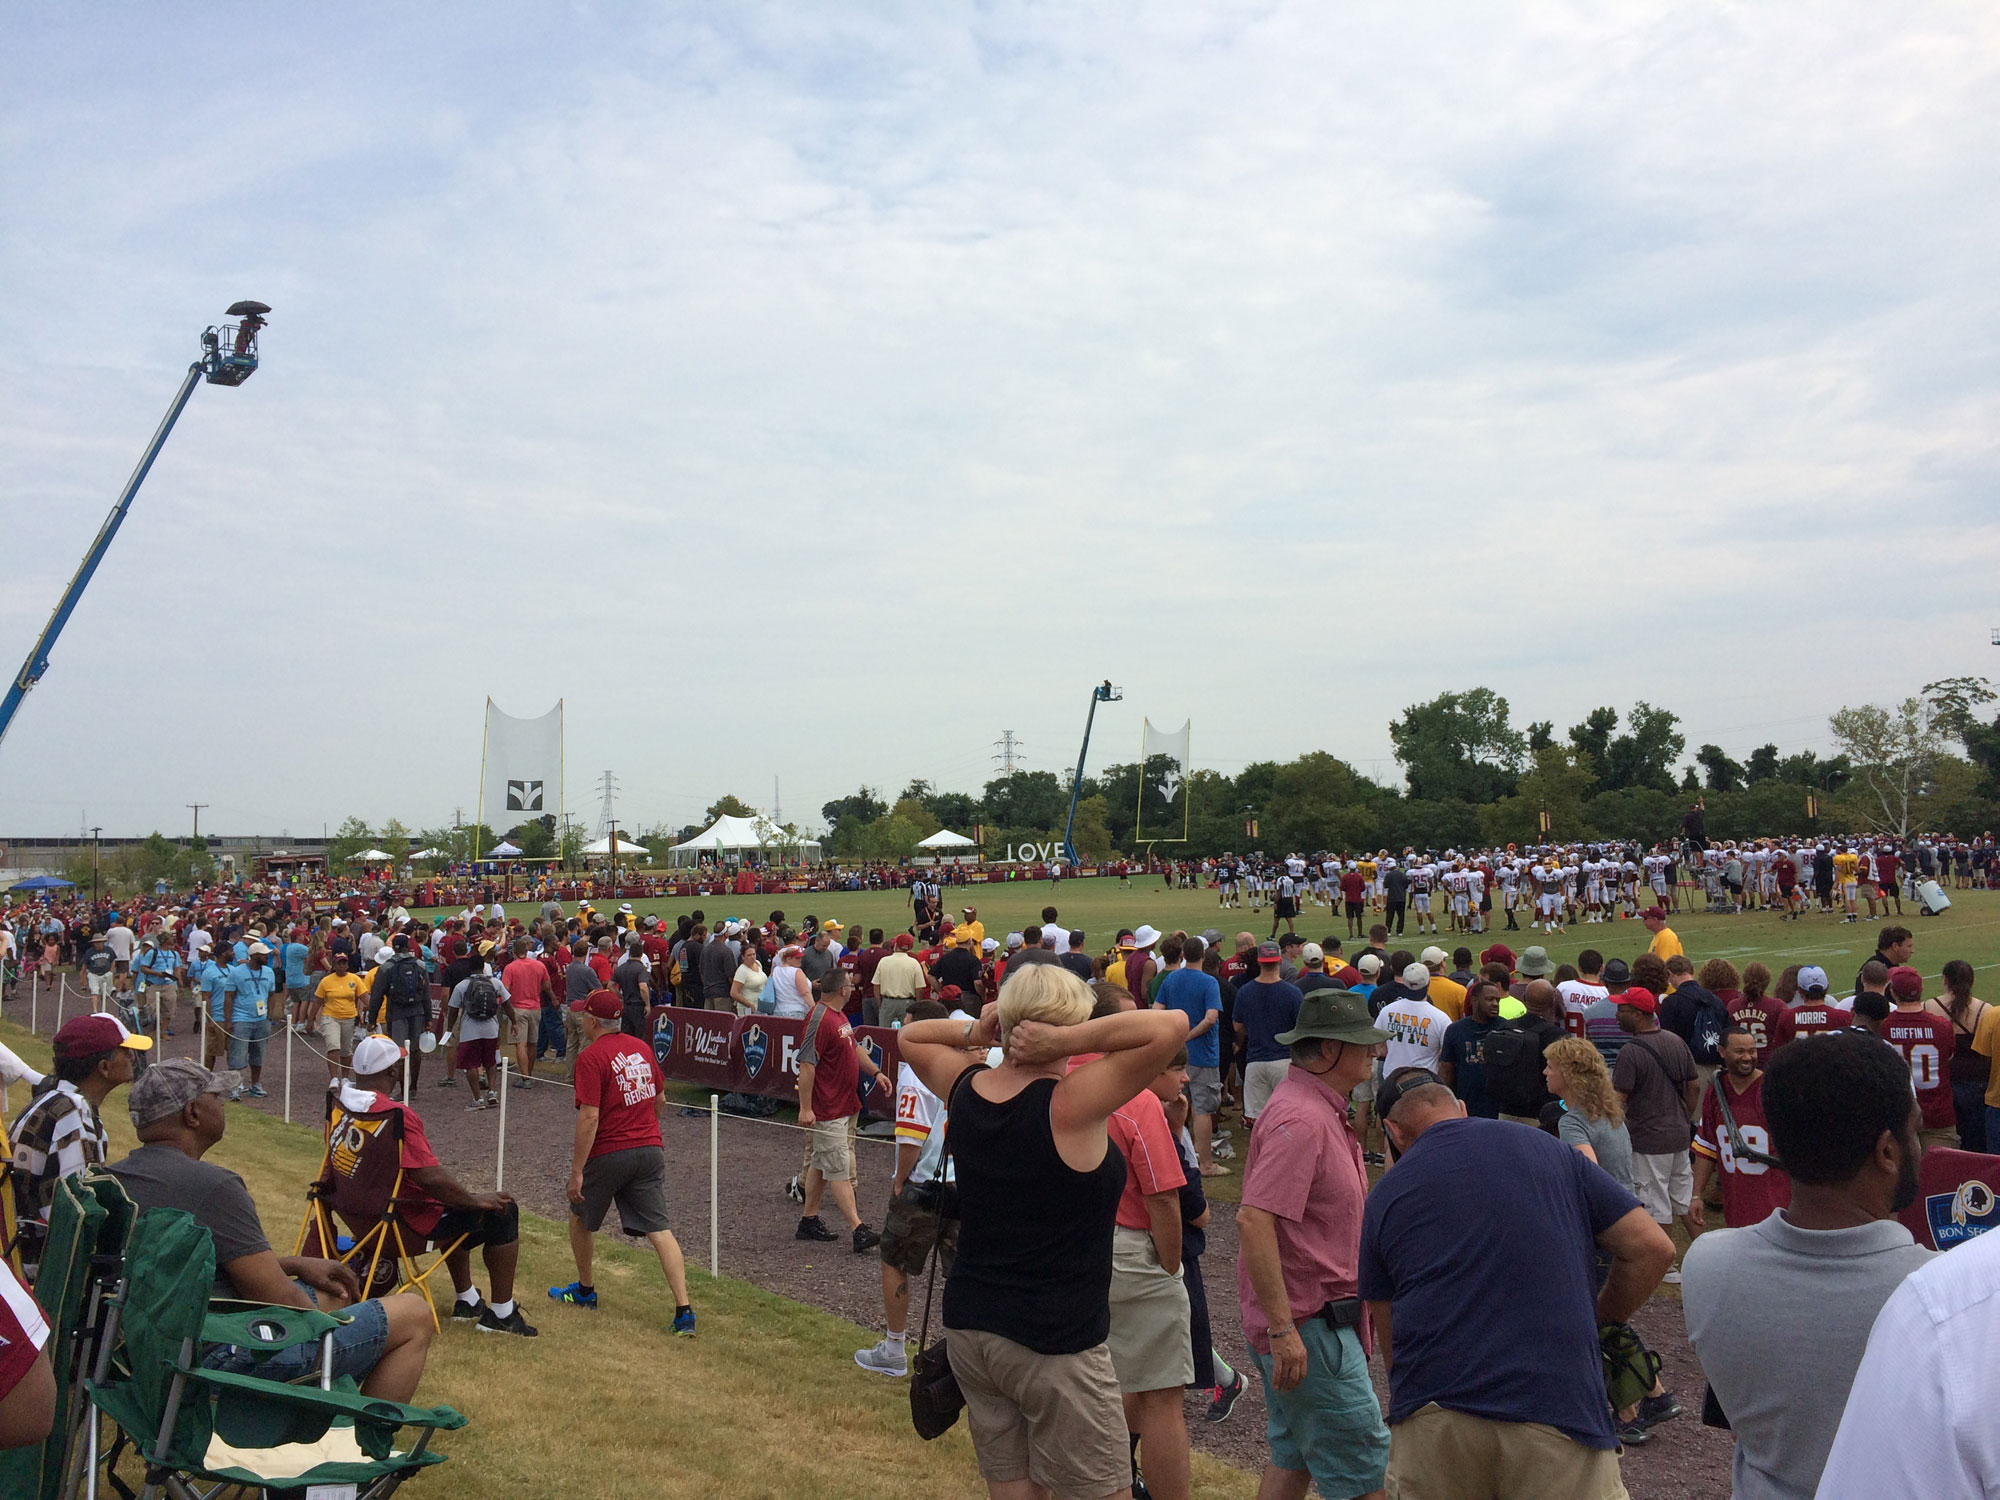 As team looks to improve, attendance down at Redskins camp